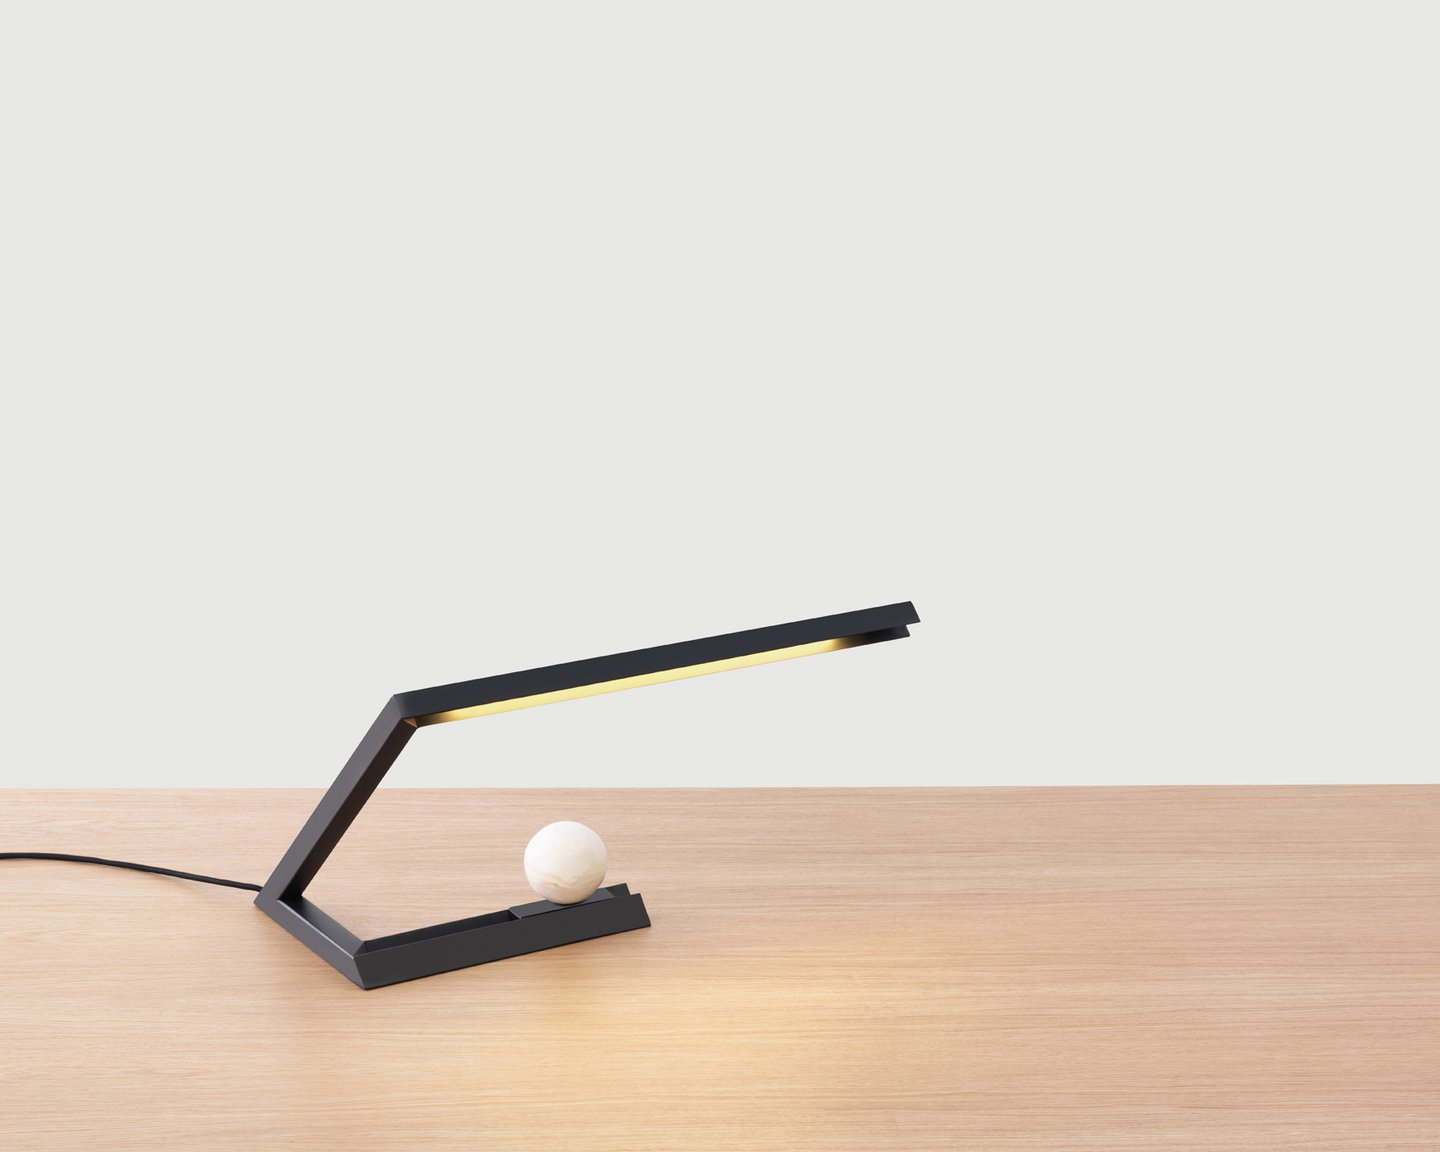 Image: uploads/2017_03/Resident-Oud-table-Light-Black-by-Nat-Cheshire-2.jpg